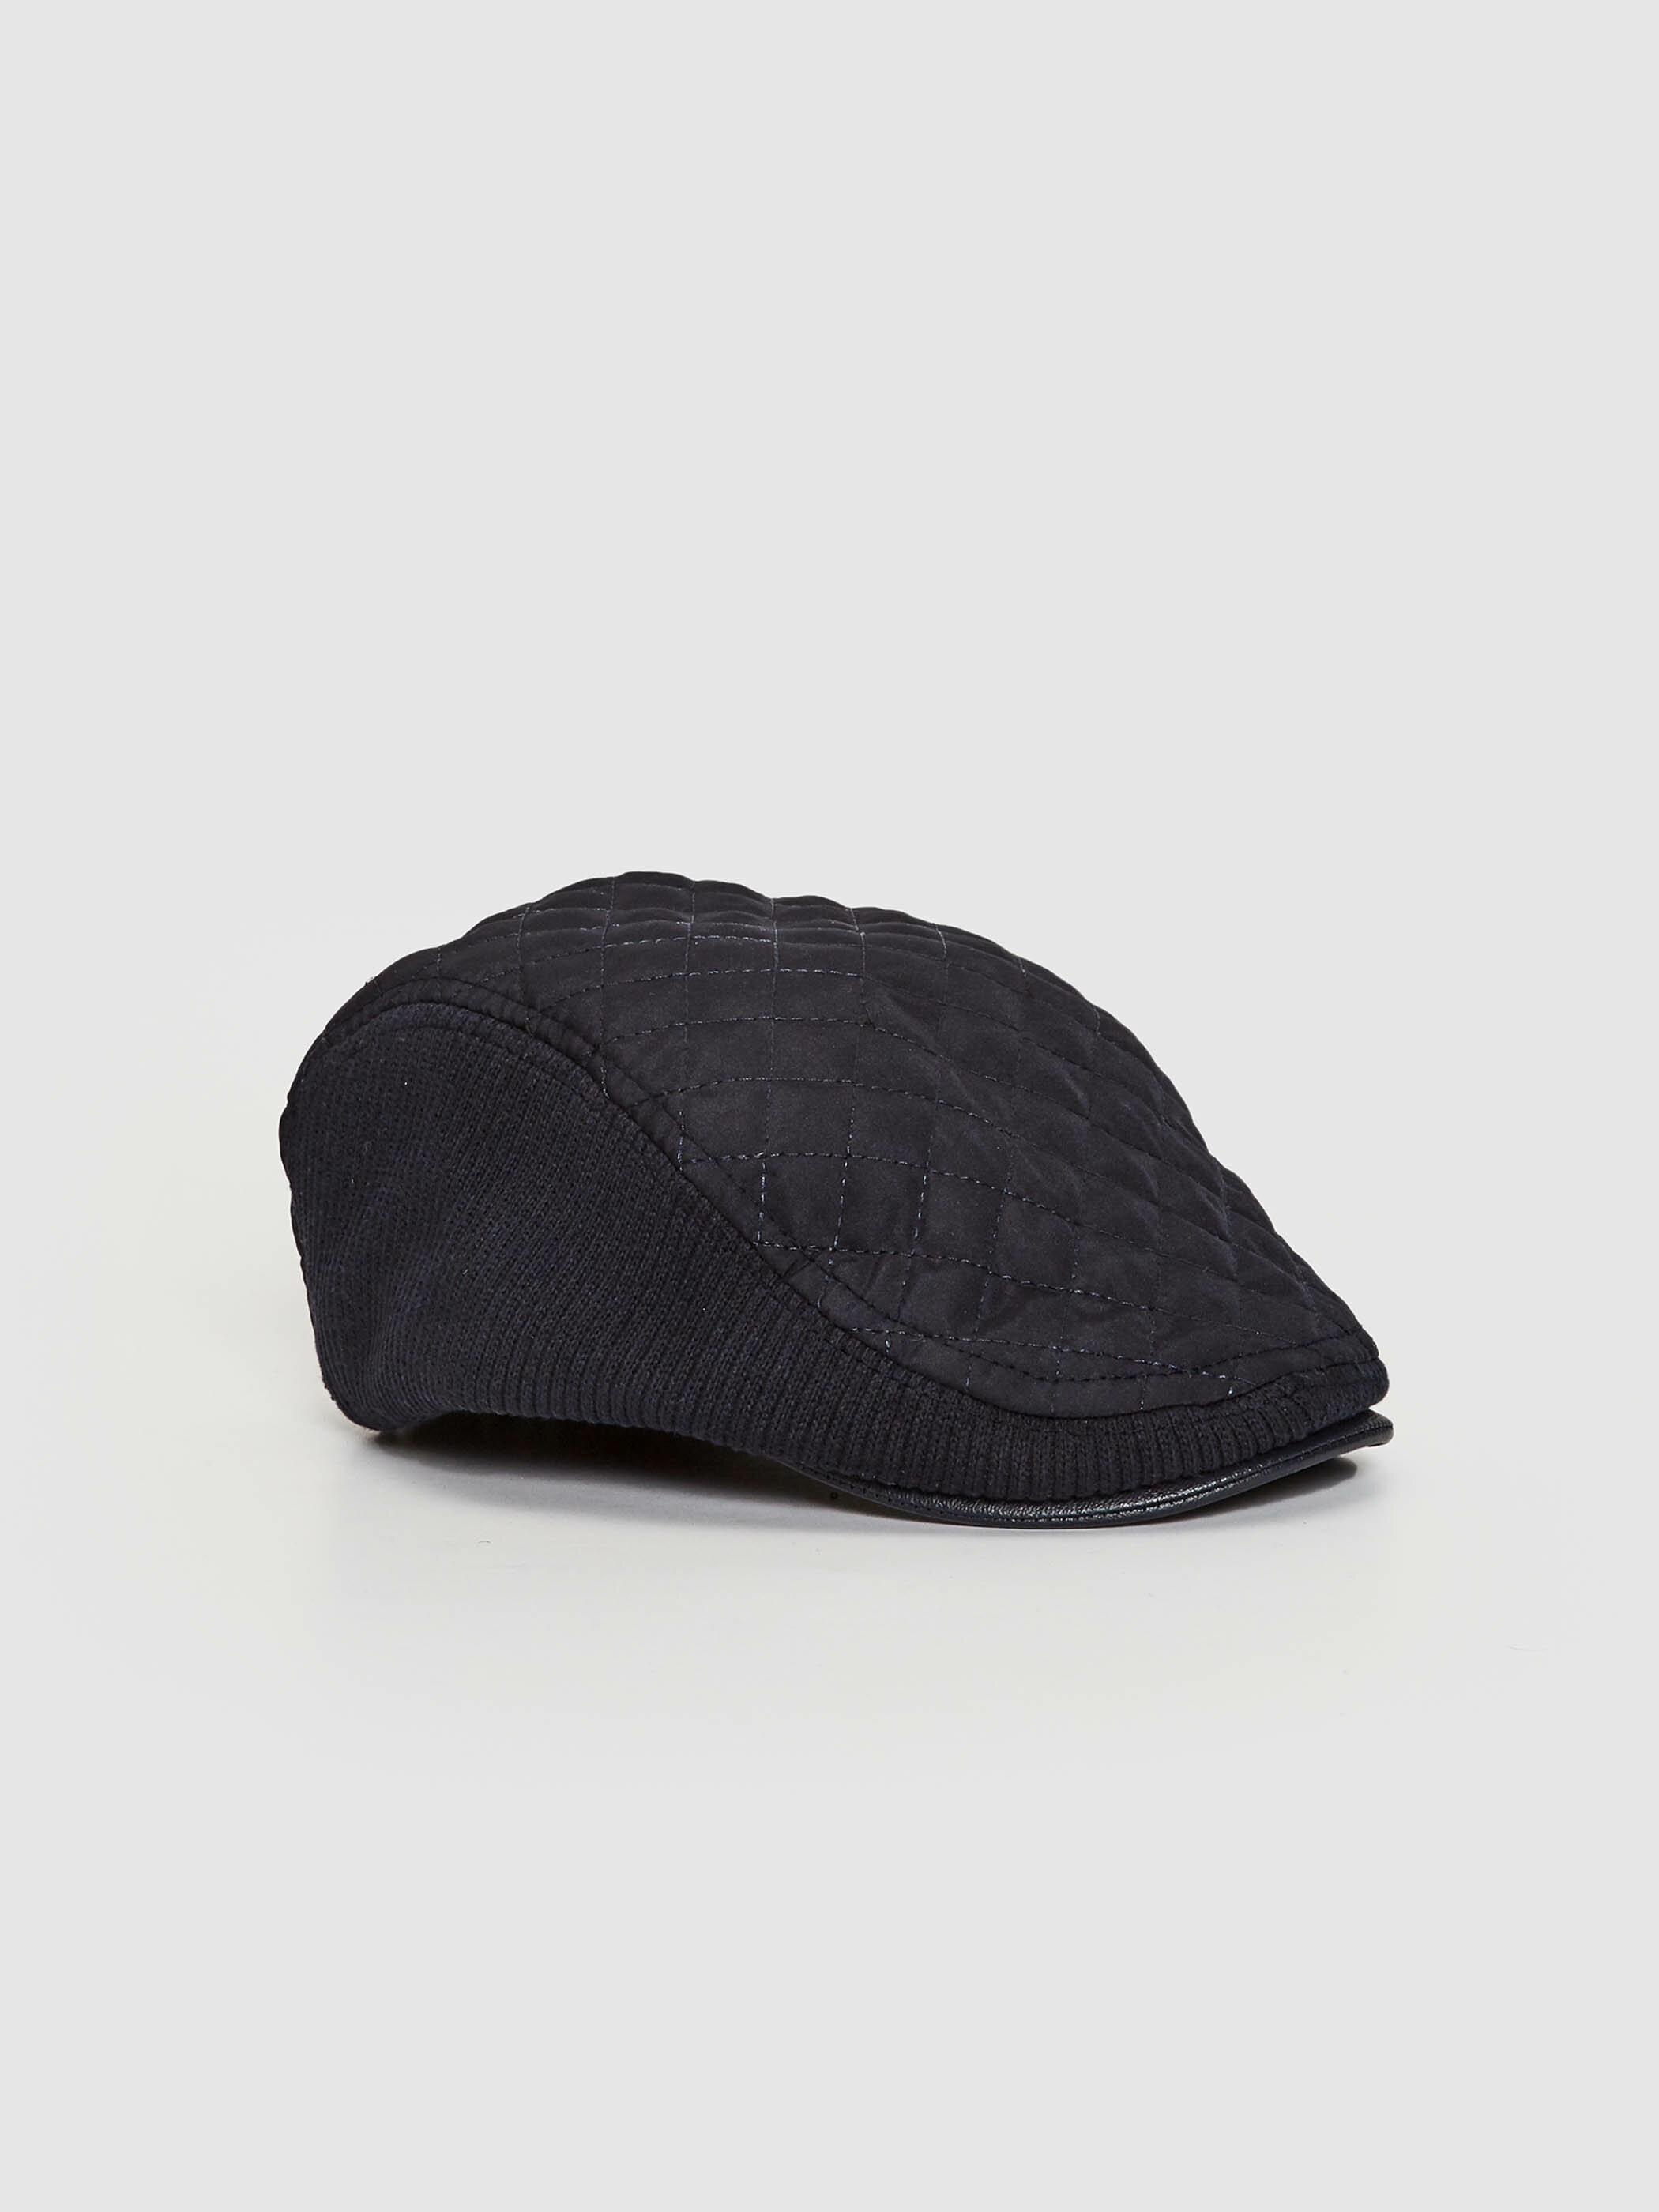 NAVY - Quilted Hat - S11148Z8